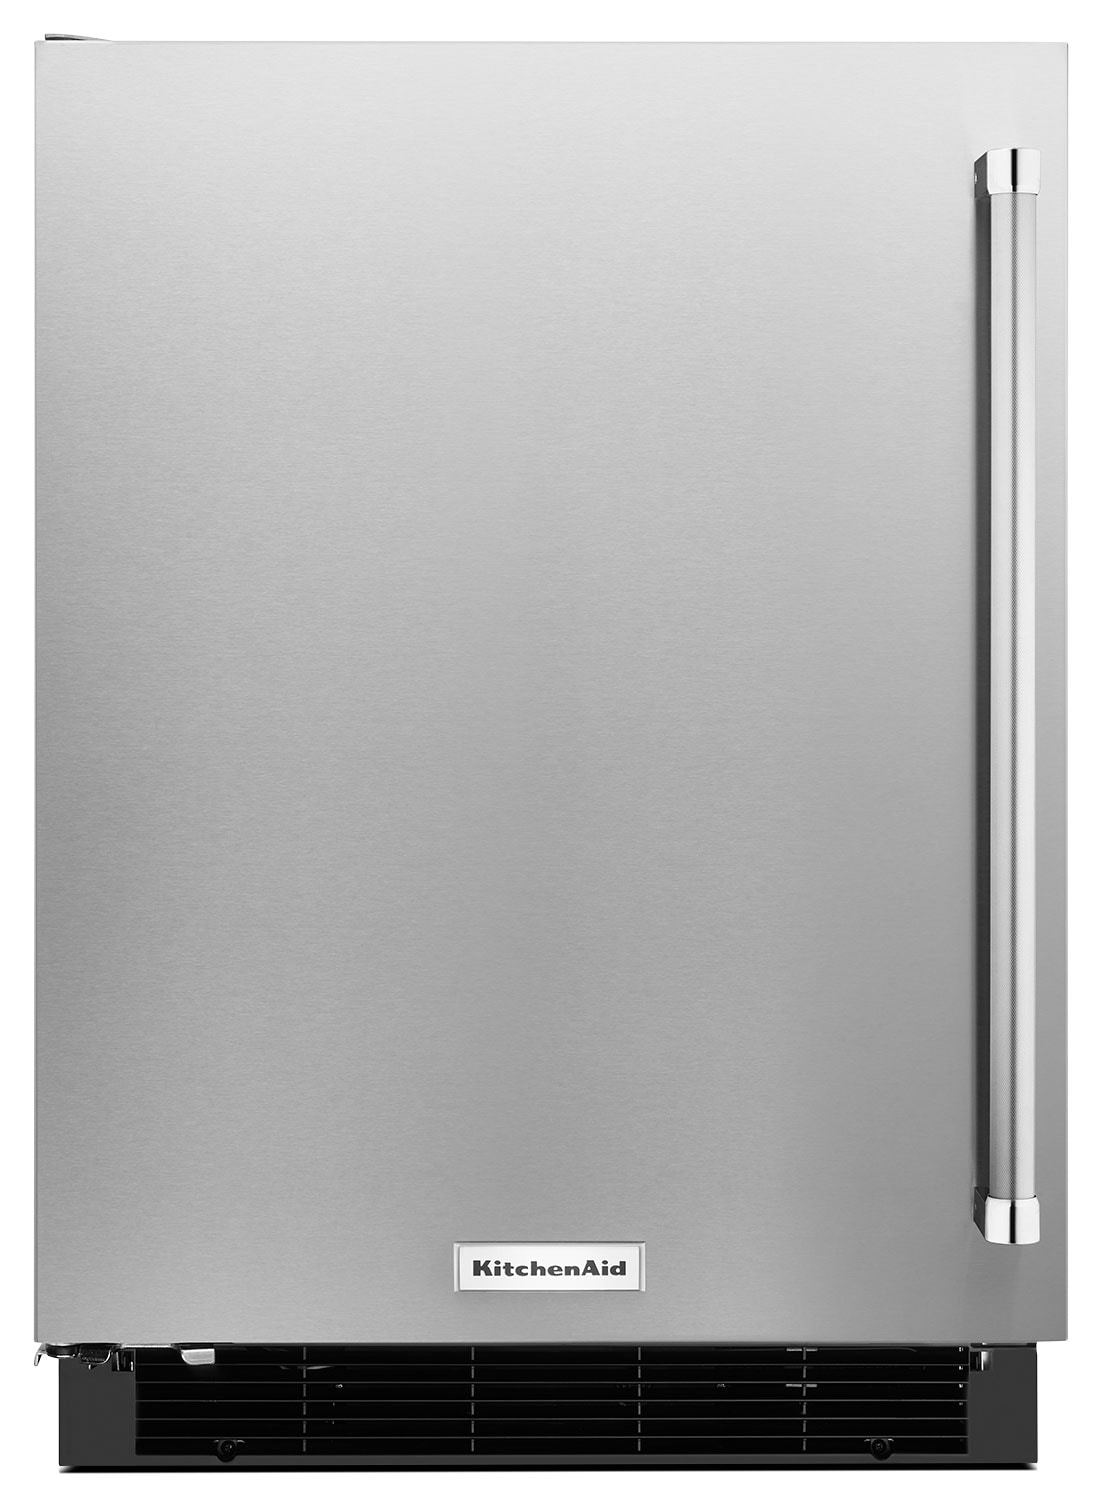 Refrigerators and Freezers - KitchenAid 4.9 Cu. Ft. Undercounter Refrigerator with Left Door Swing - Stainless Steel